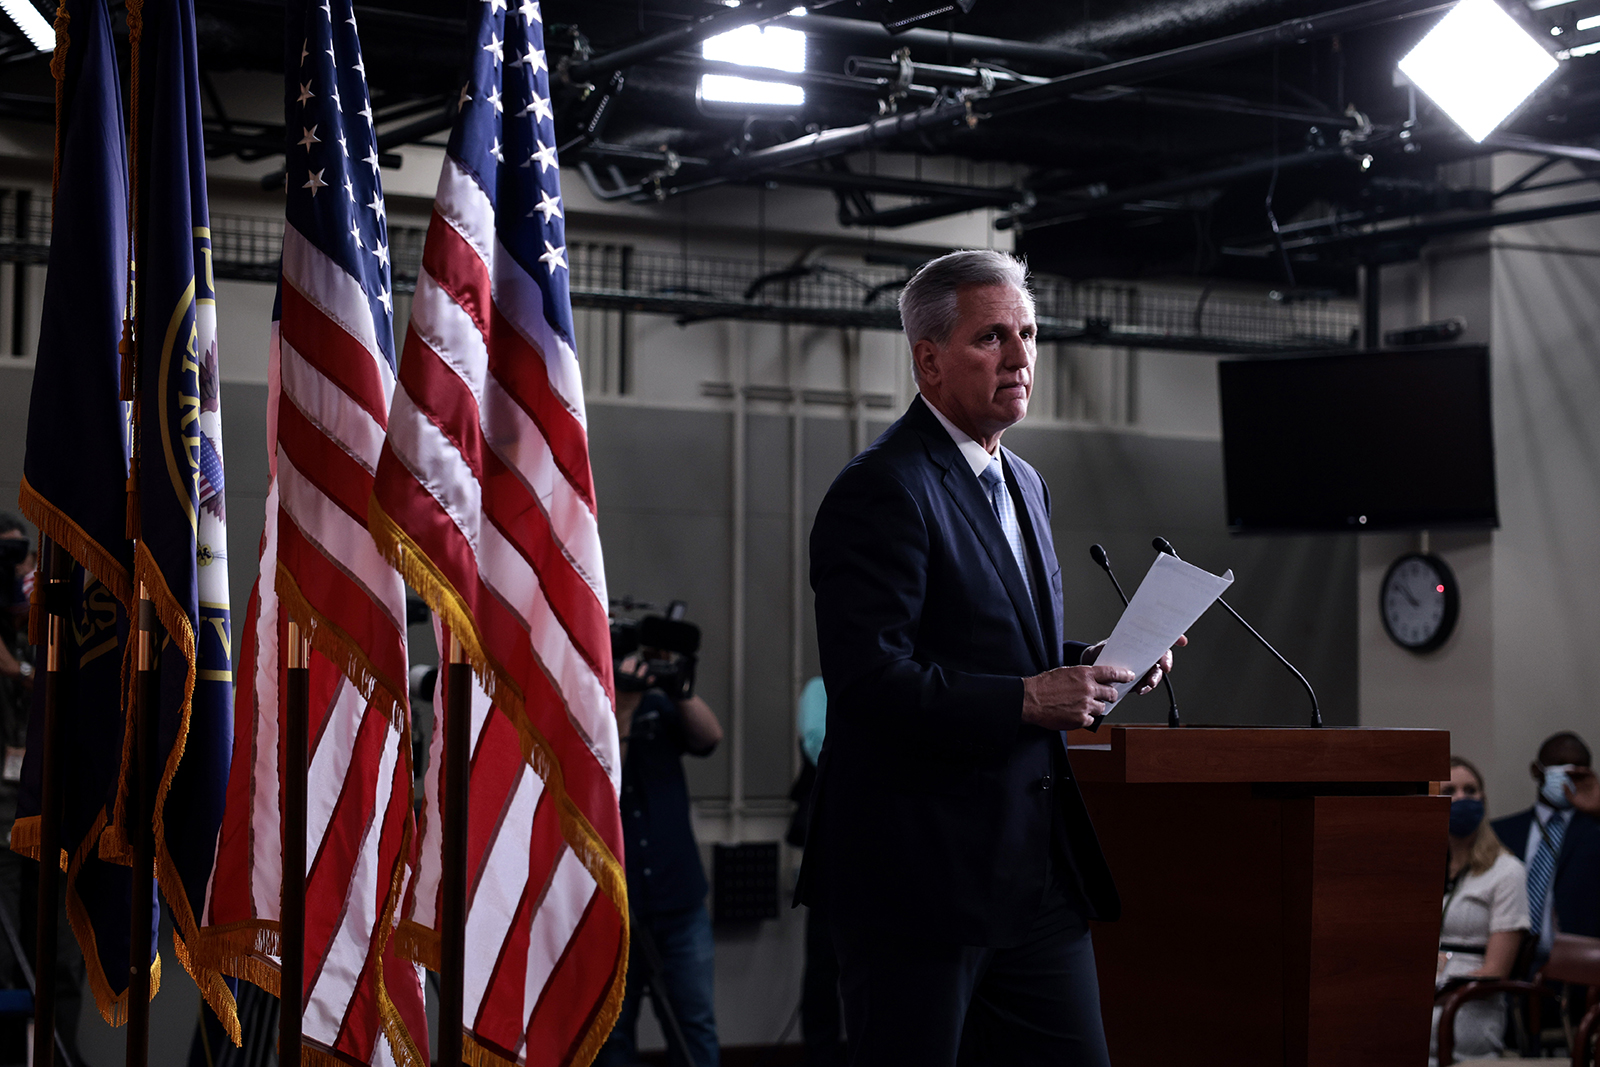 House Minority Leader Kevin McCarthy departs from the podium after speaking at a press conference at the Capitol building on August 27 in Washington.